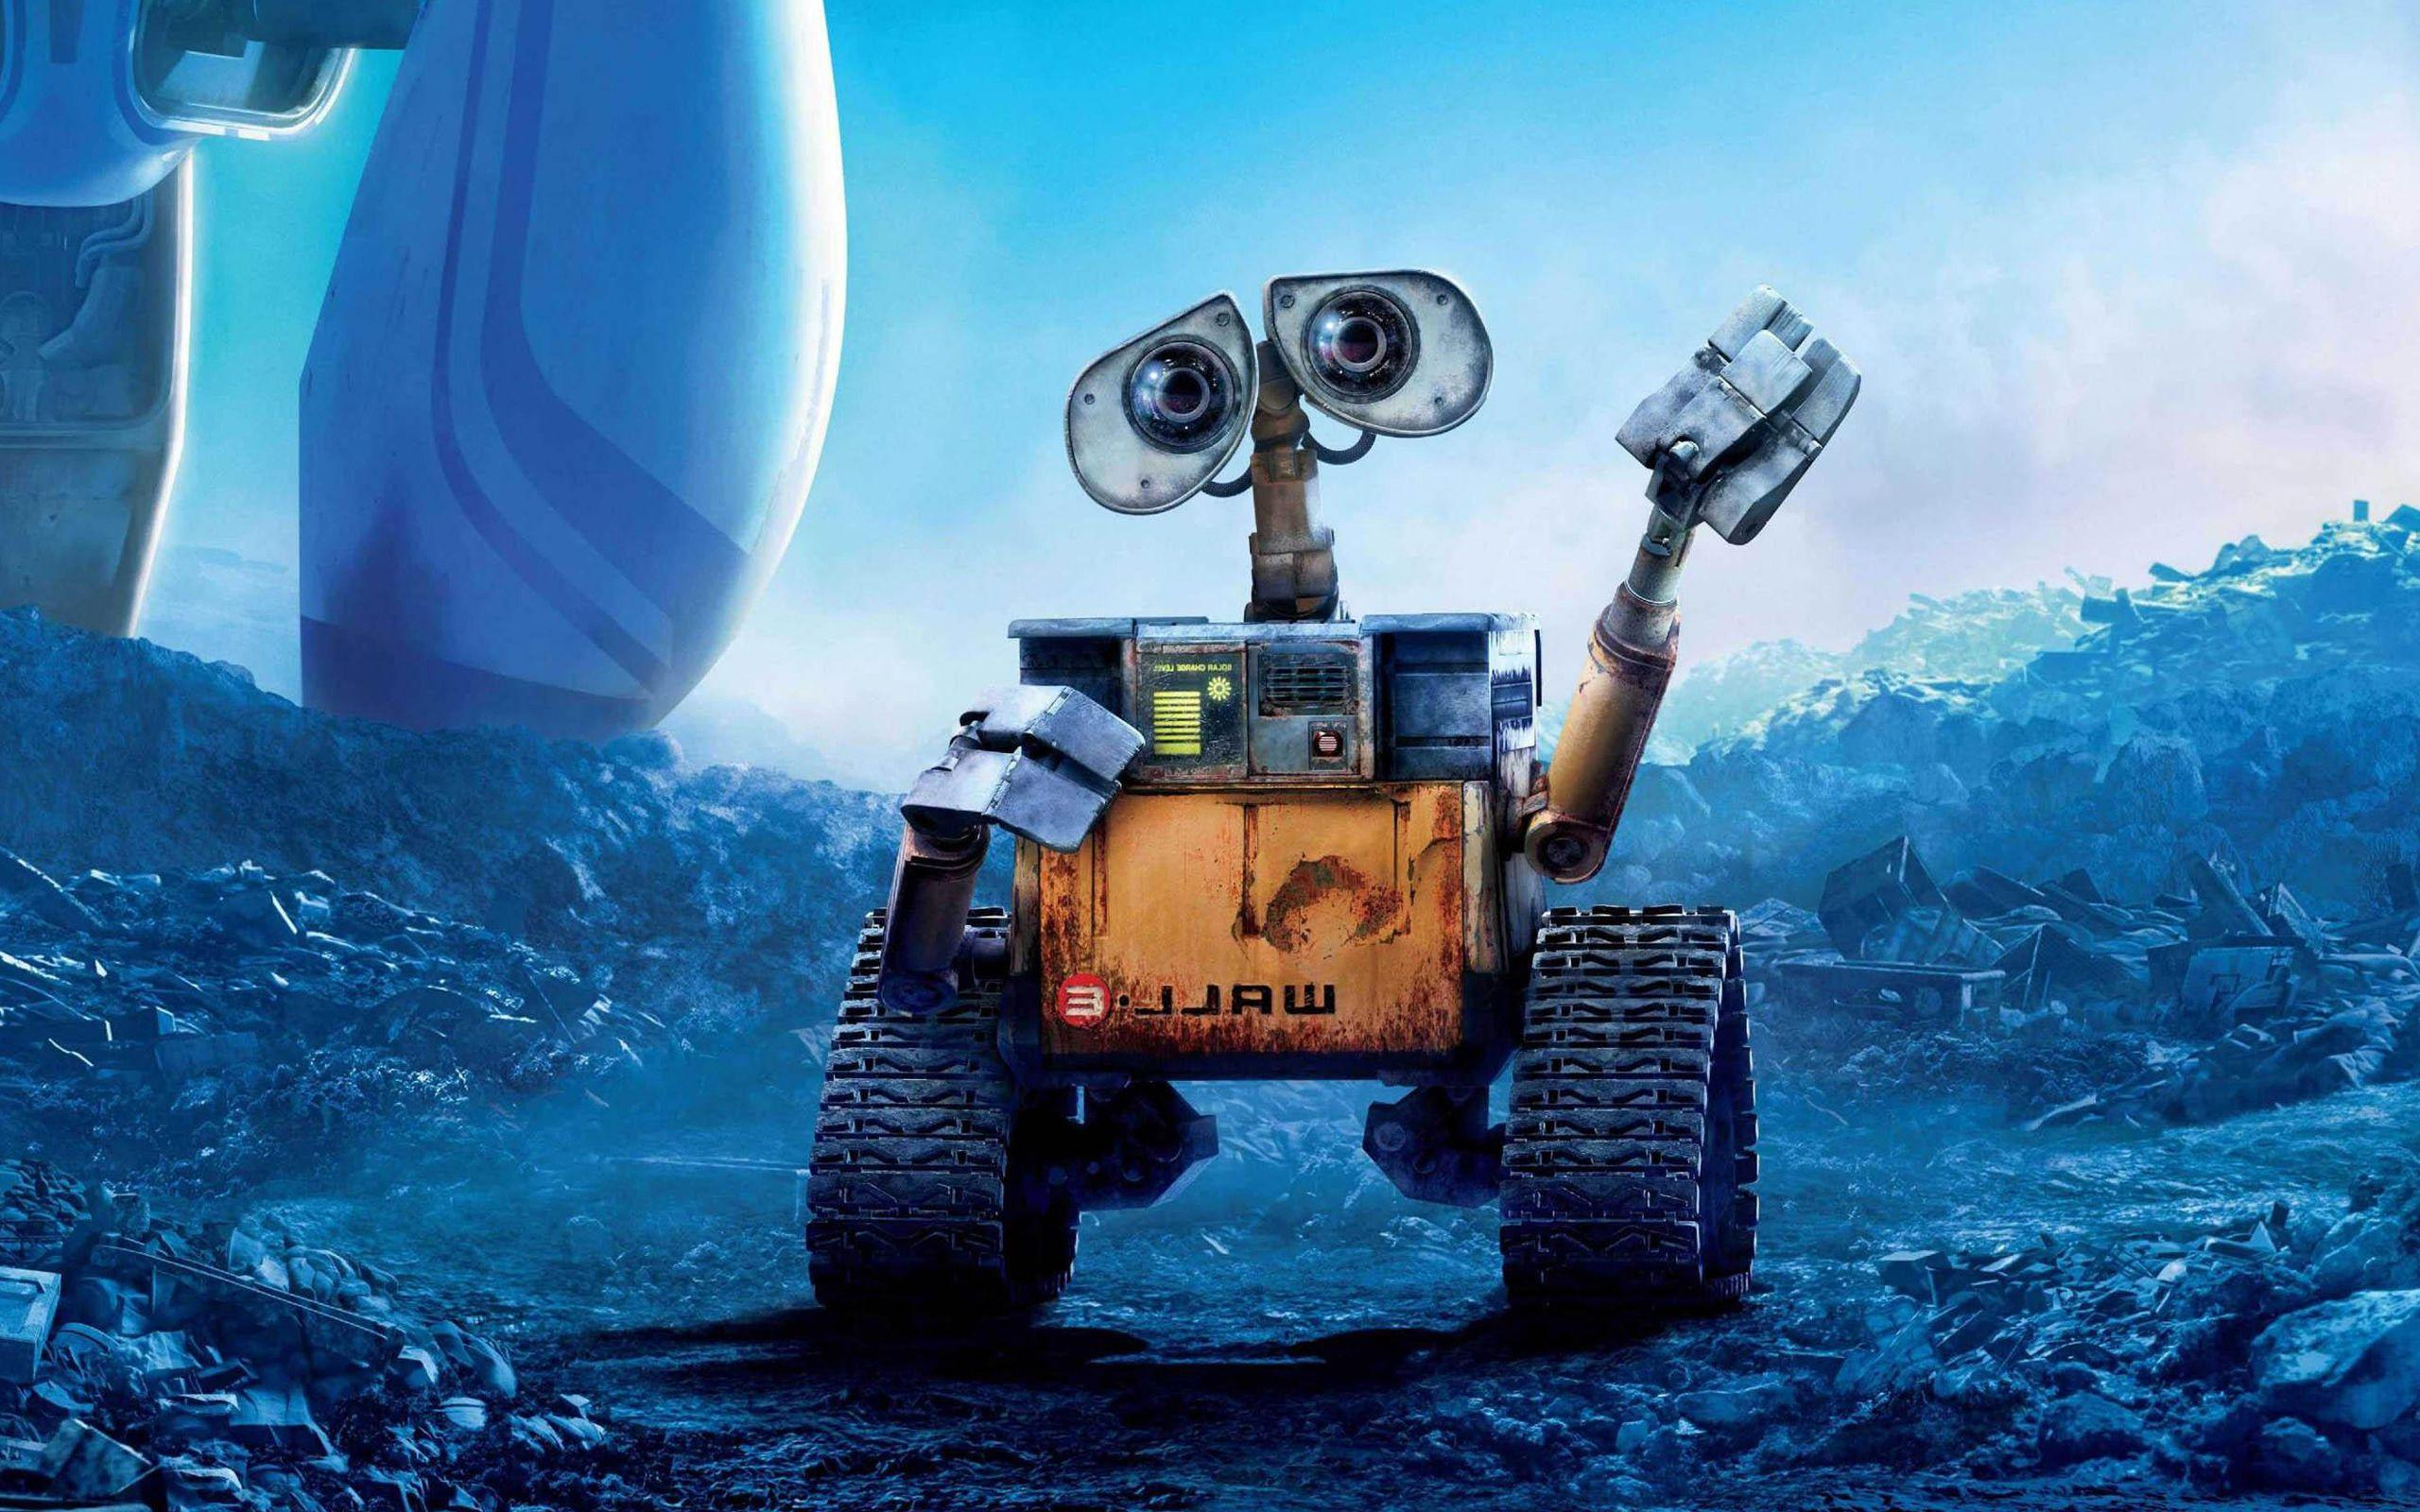 wall-e 1080p wallpapers